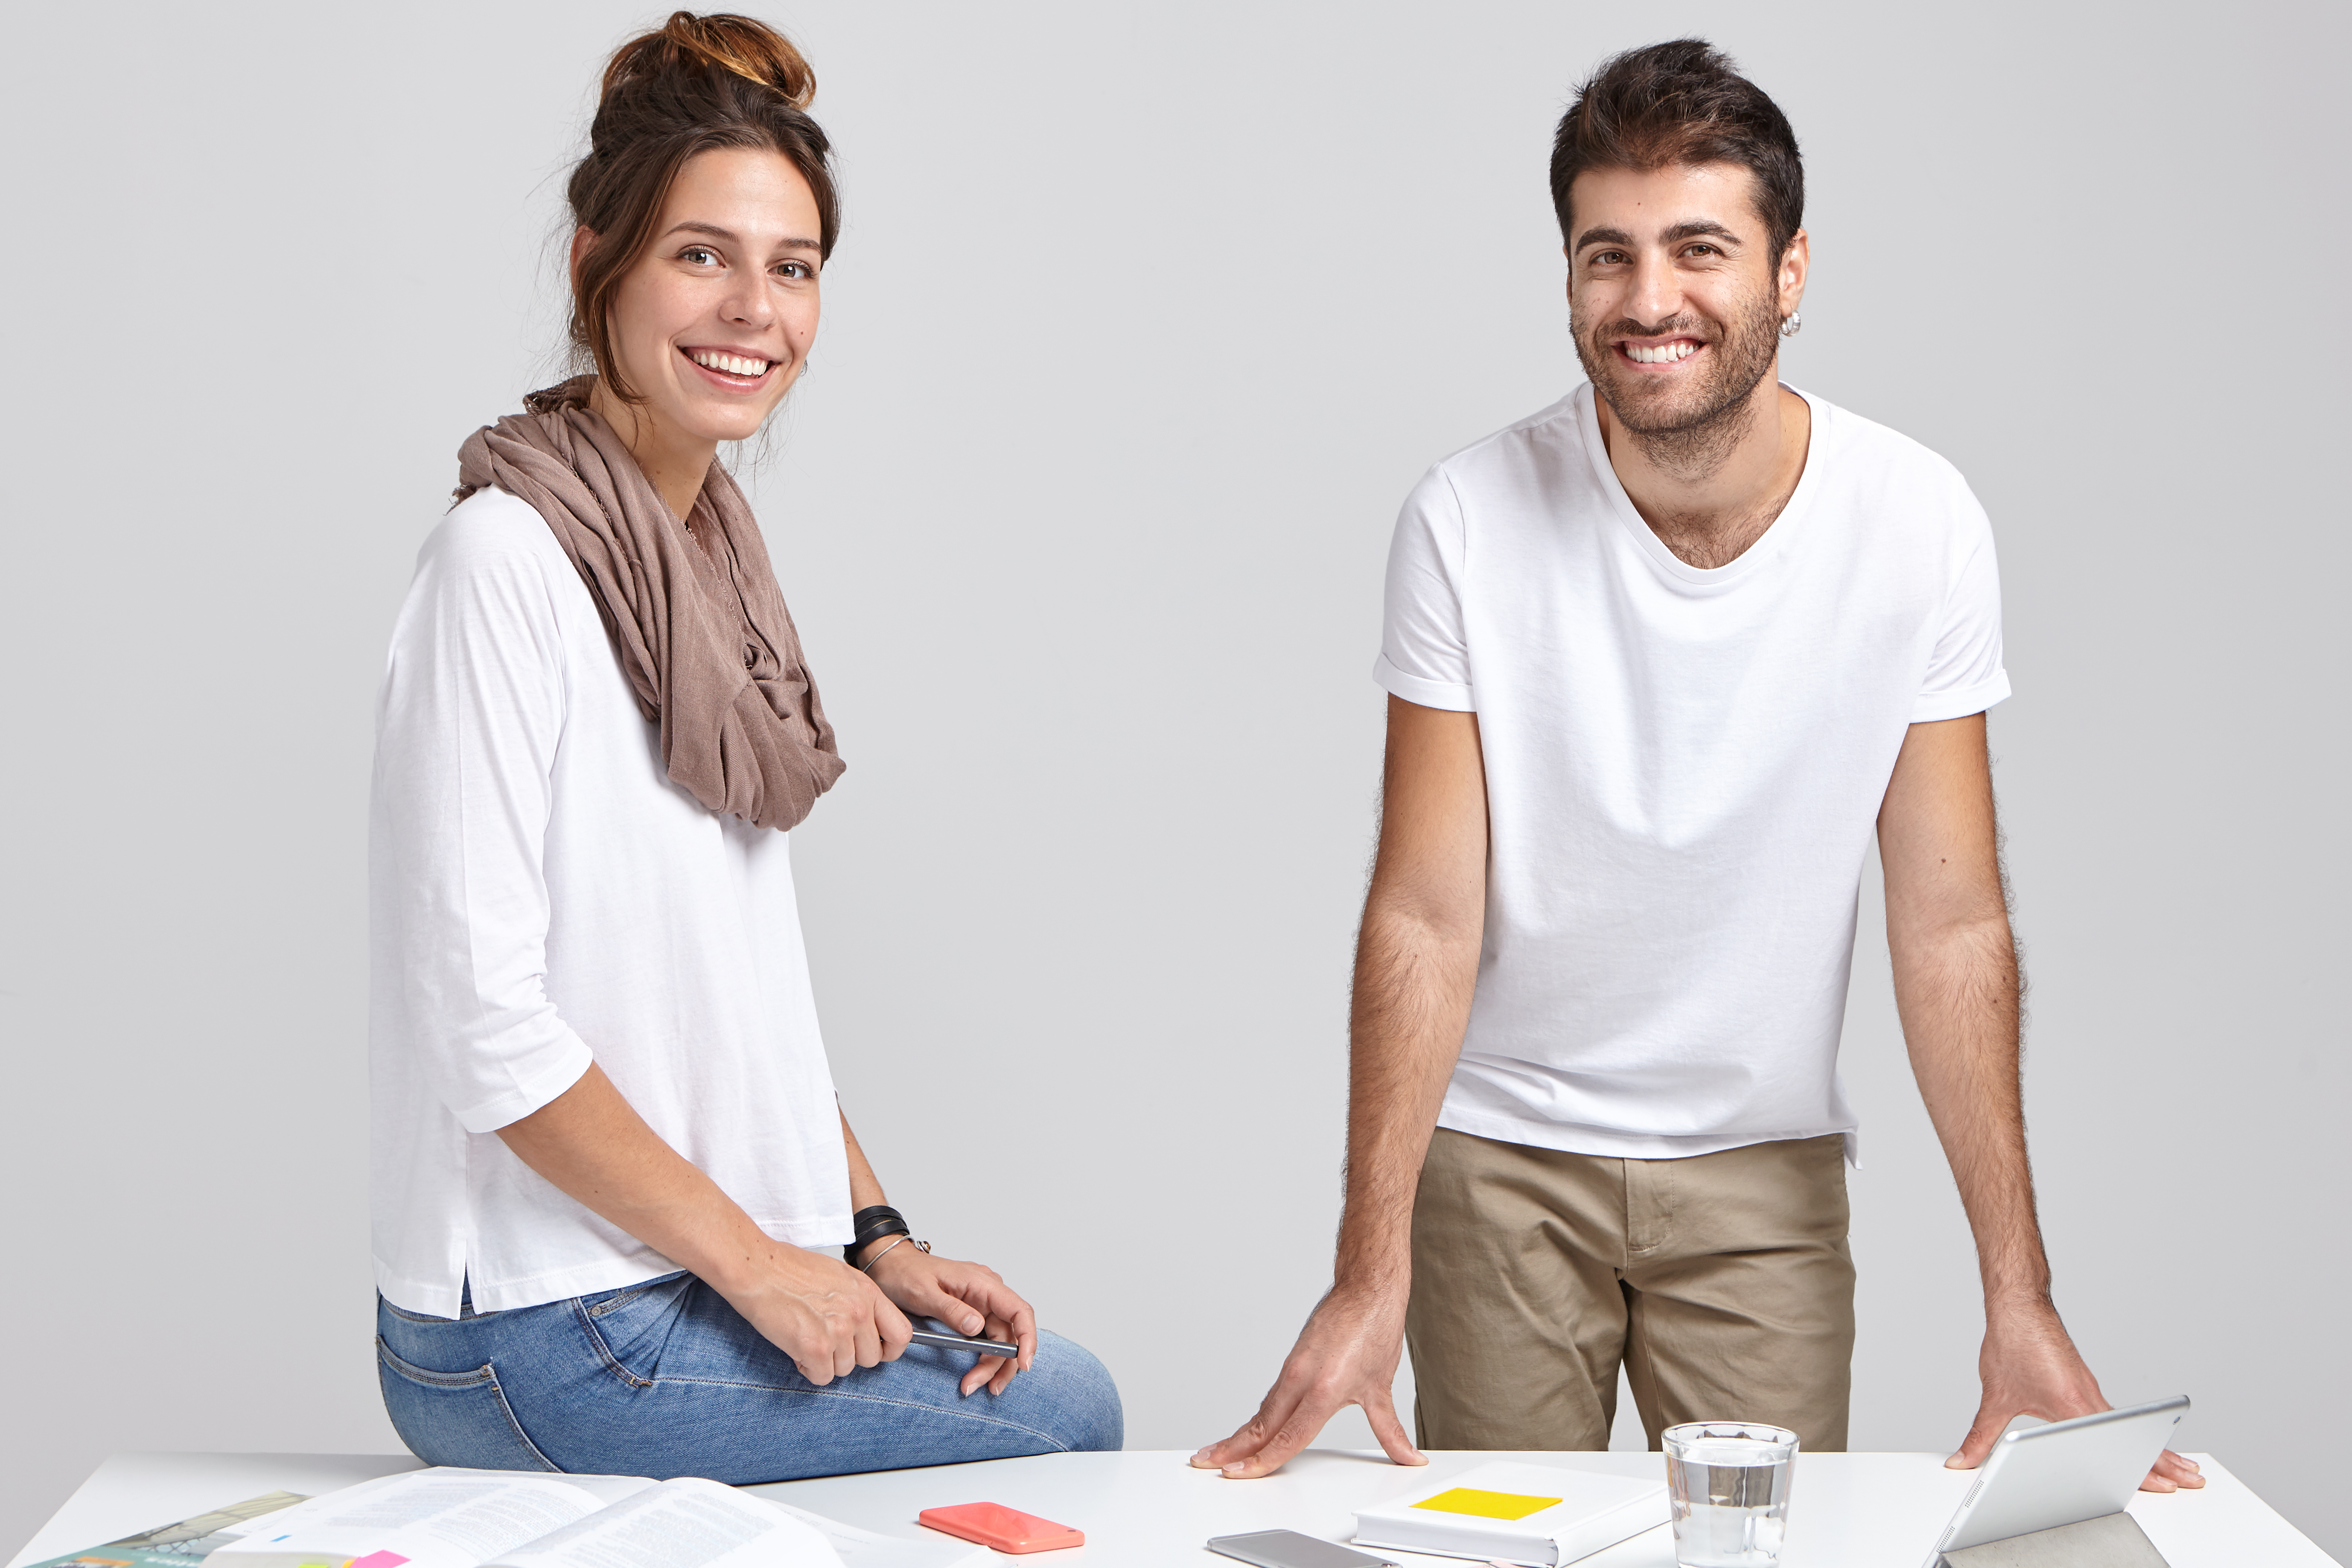 Image of woman and man architects collaborate together for common project, satisfied with productive work. Pretty lady in white jumper, scarf around neck sits at desk works with handsome guy